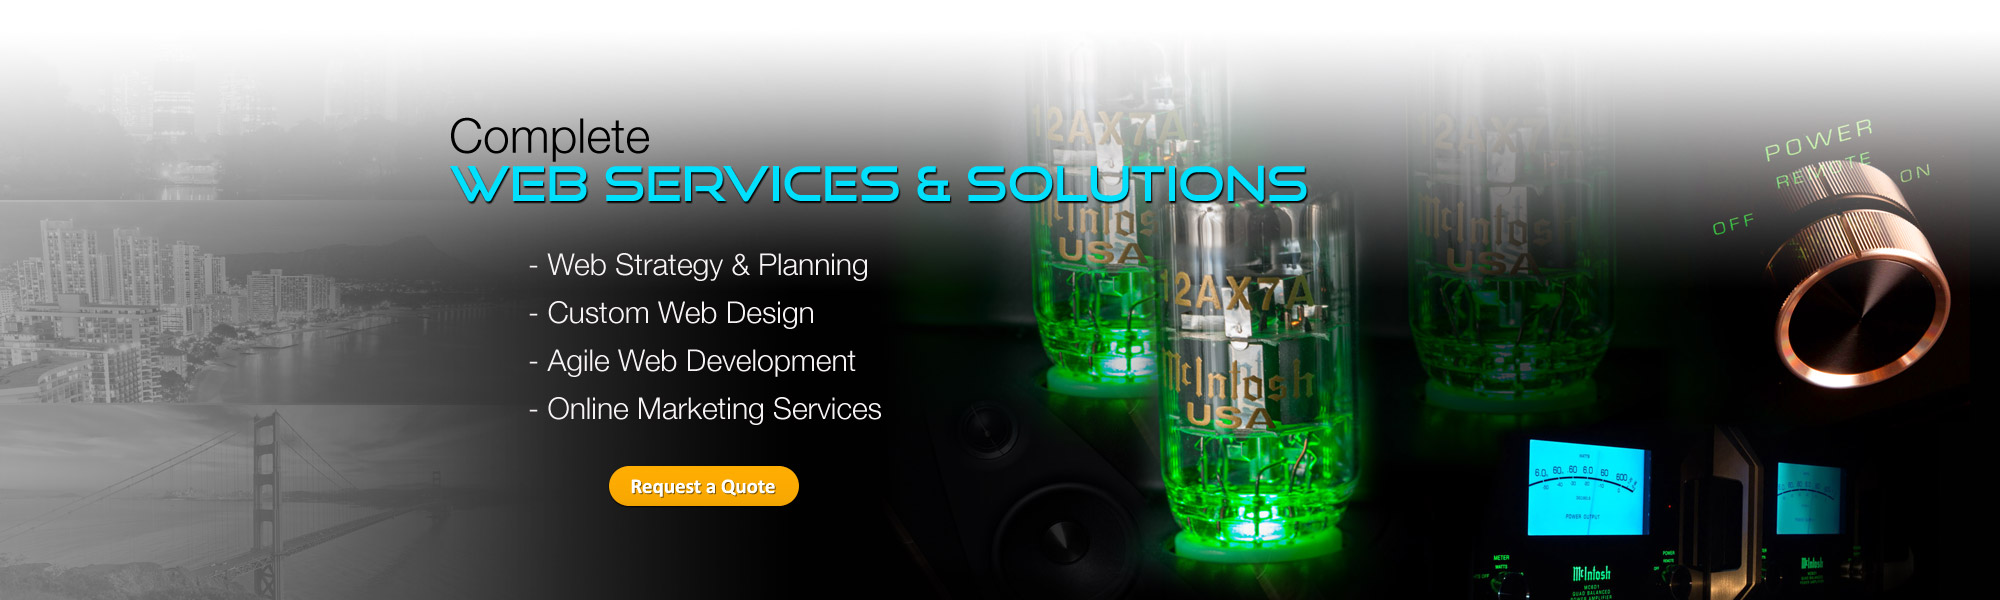 Complete Web Services and Solutions